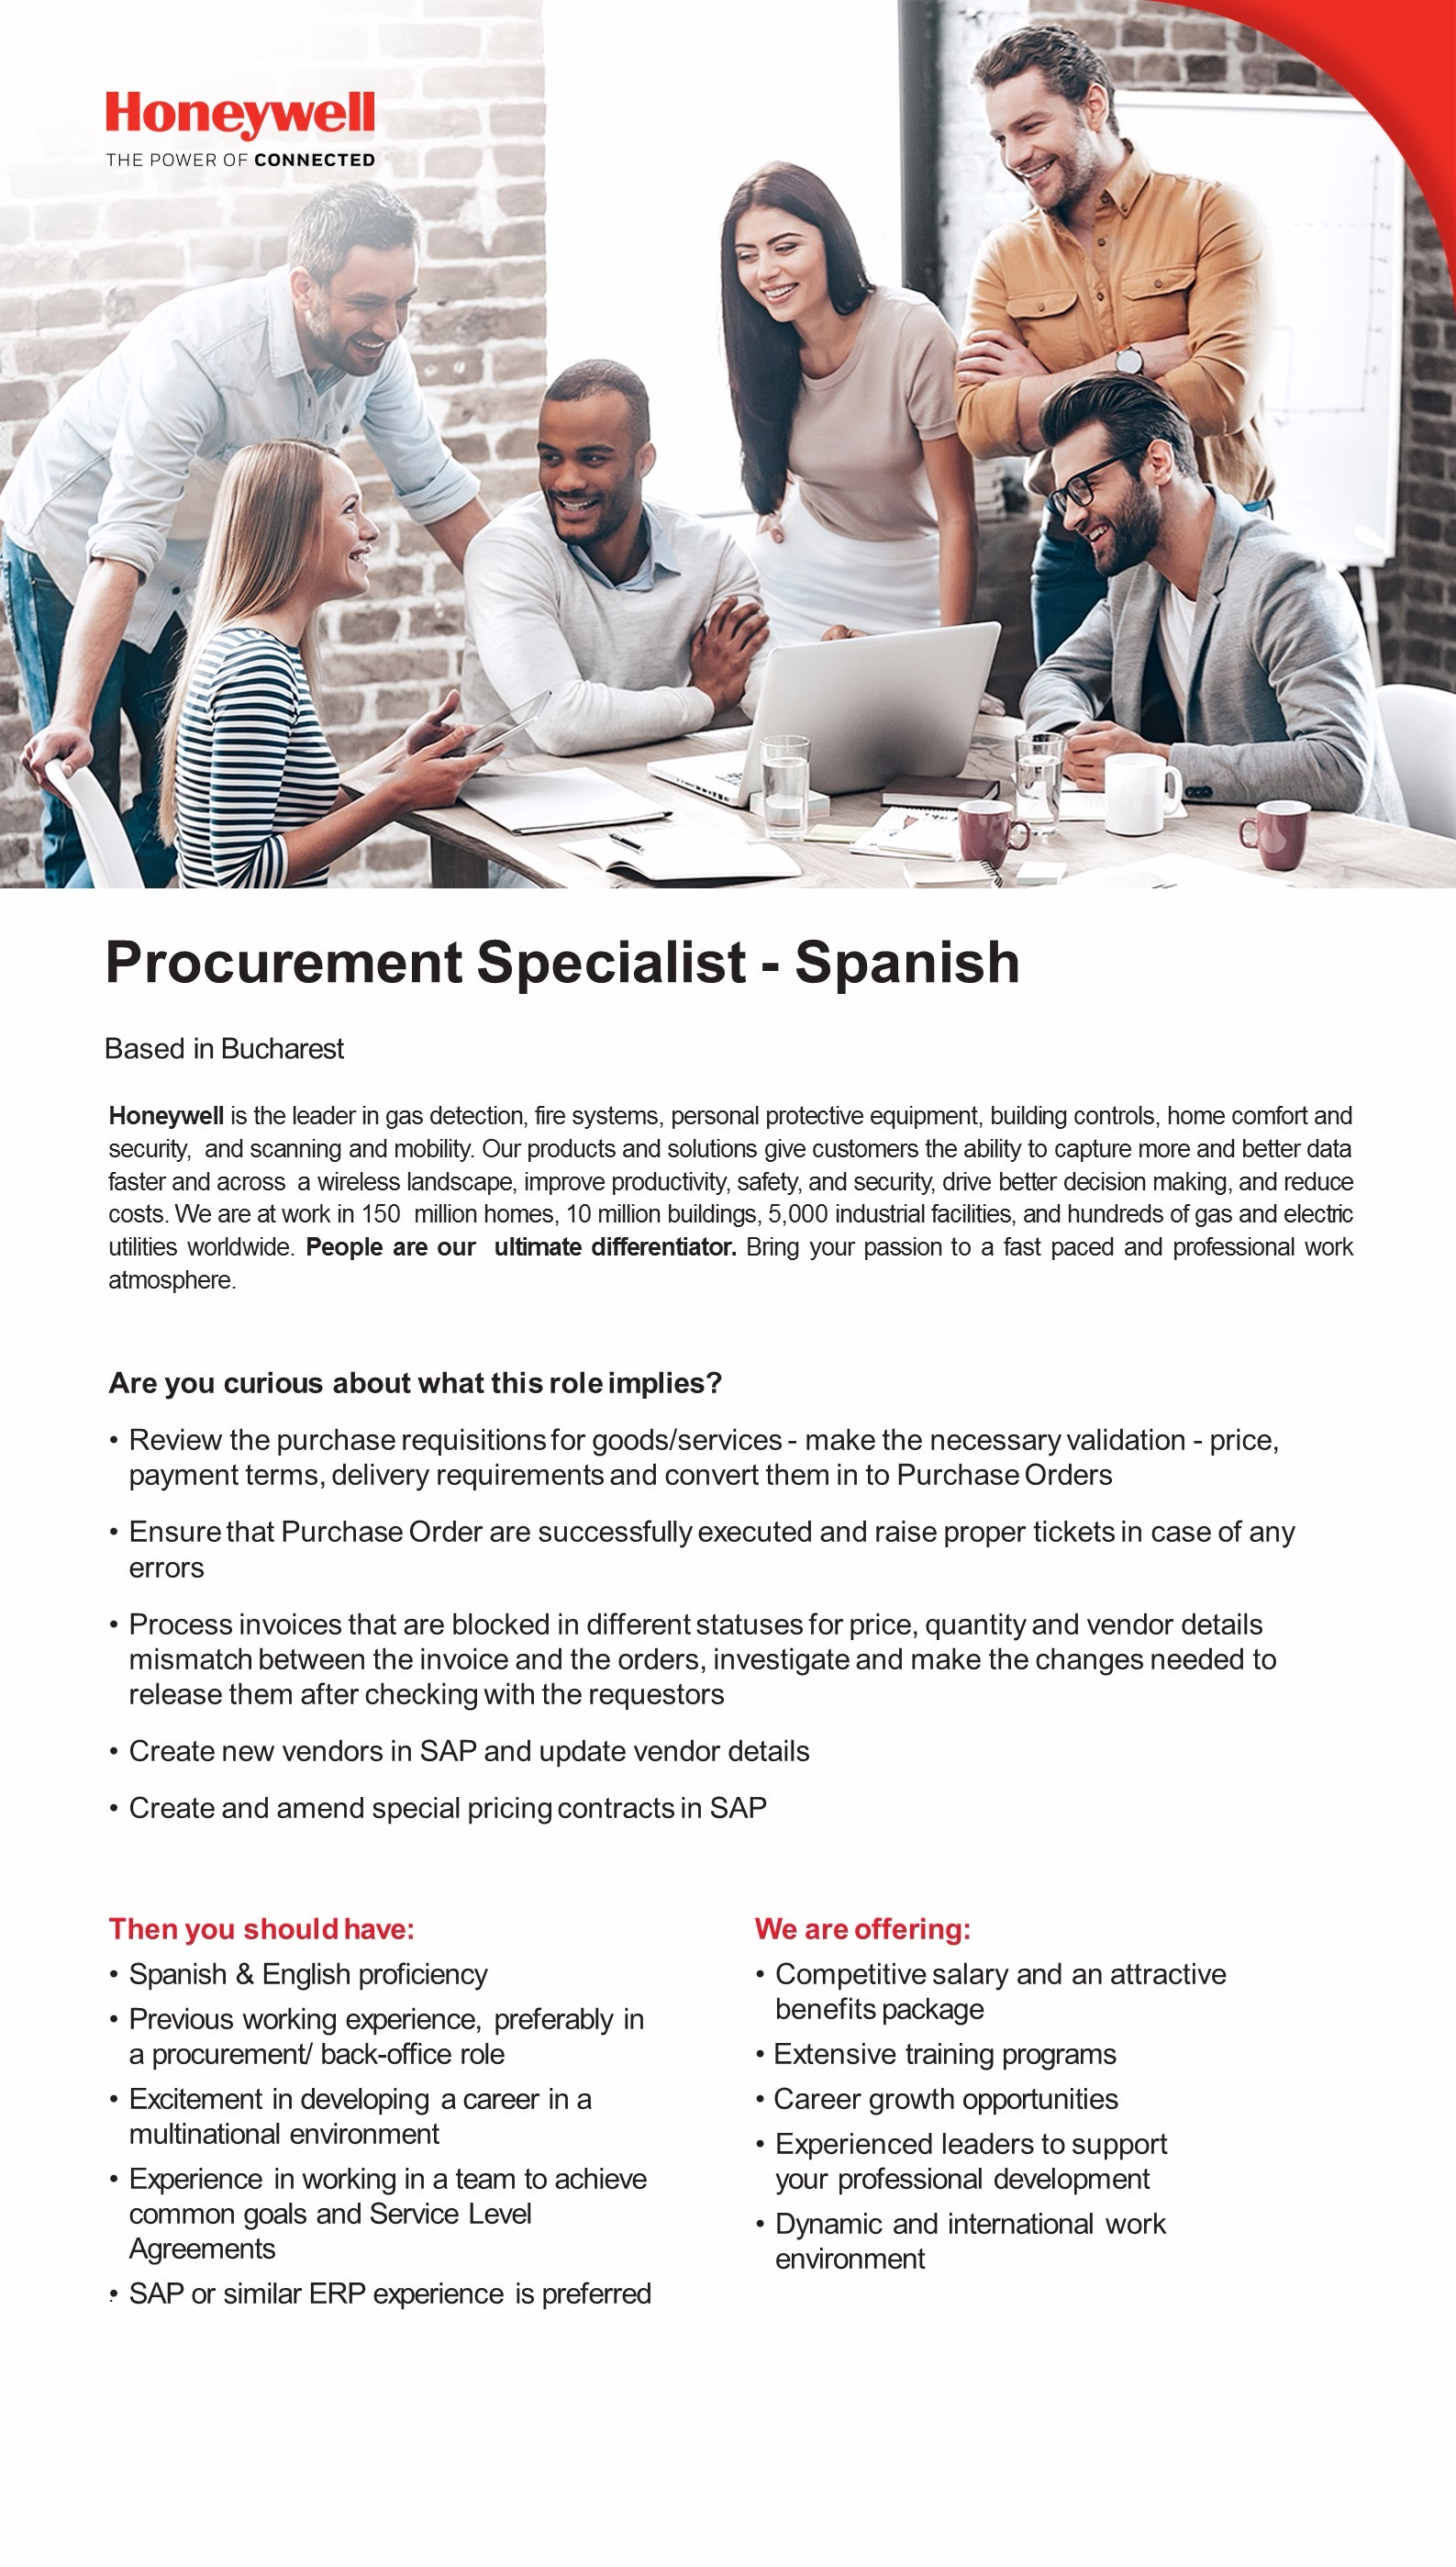 Procurement Specialist - Spanish